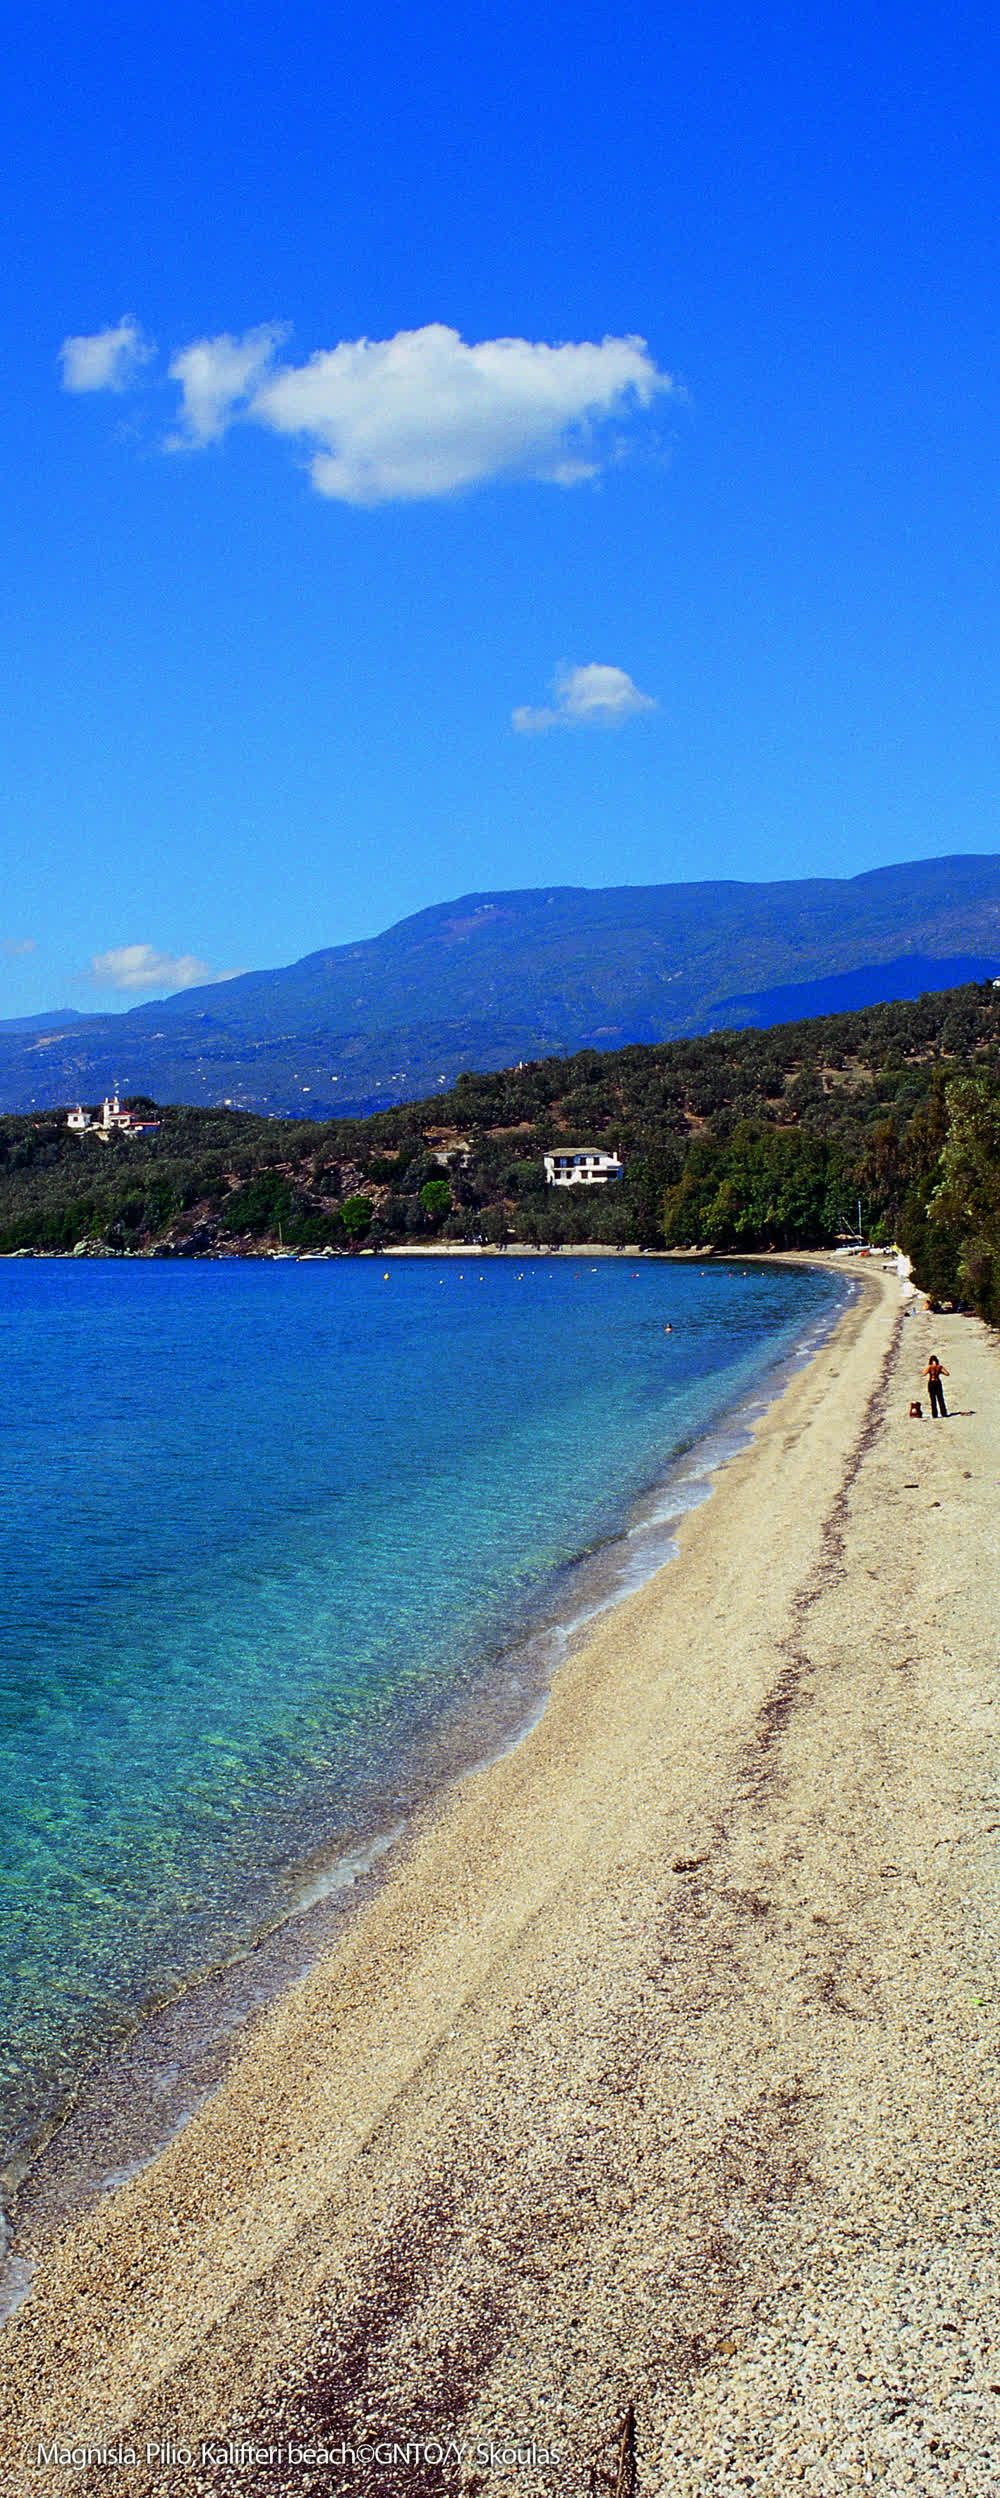 title: Magnisia Pilio Kalifteri beach Greece